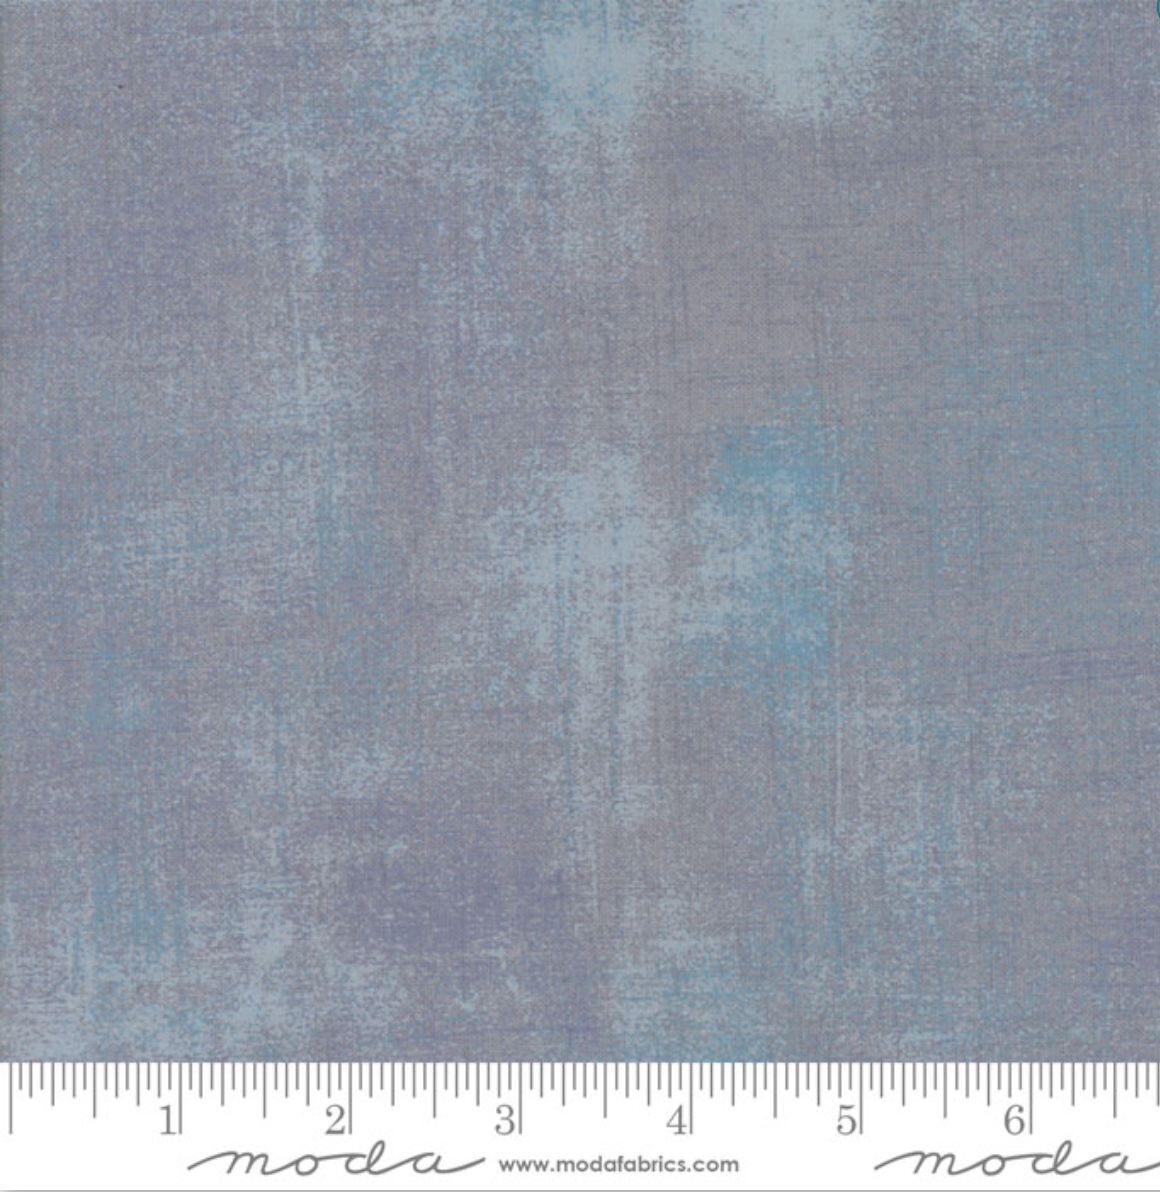 Grunge Basics BLUE by Moda 30150 60